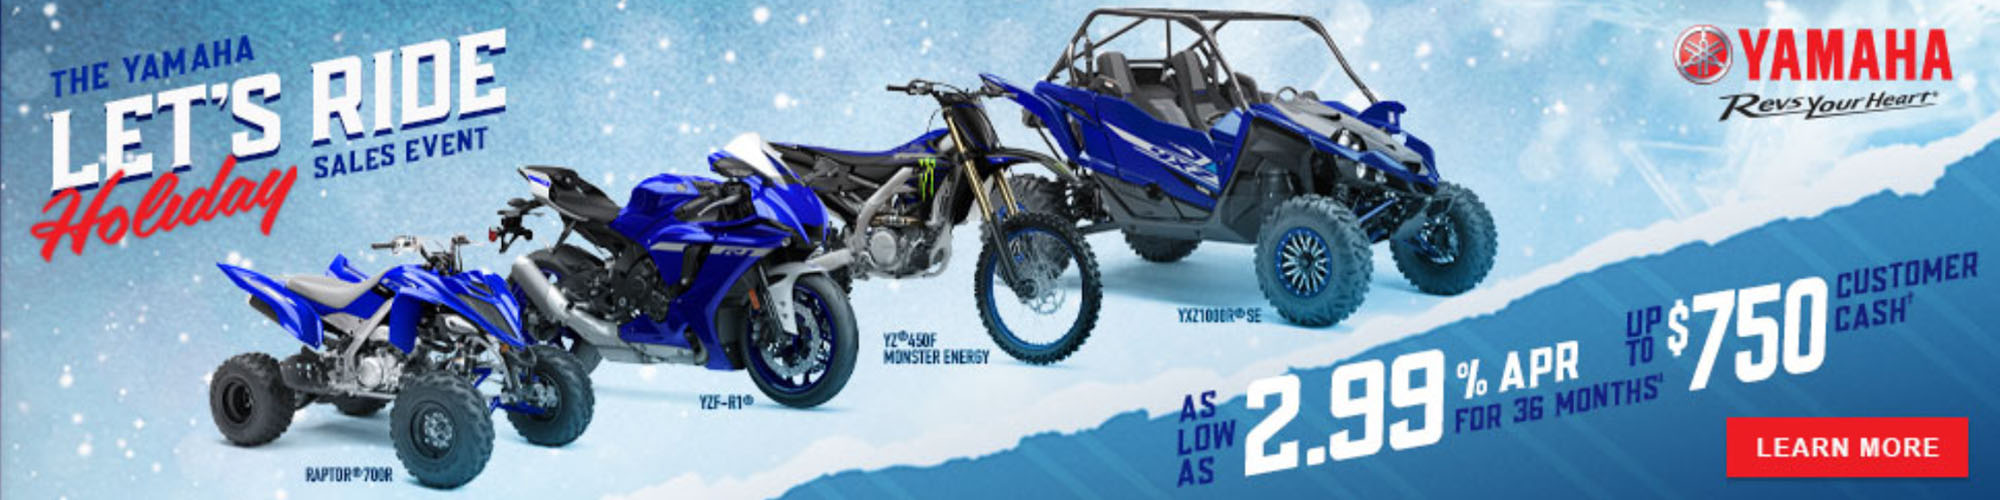 Let's Ride Holiday Sales Event